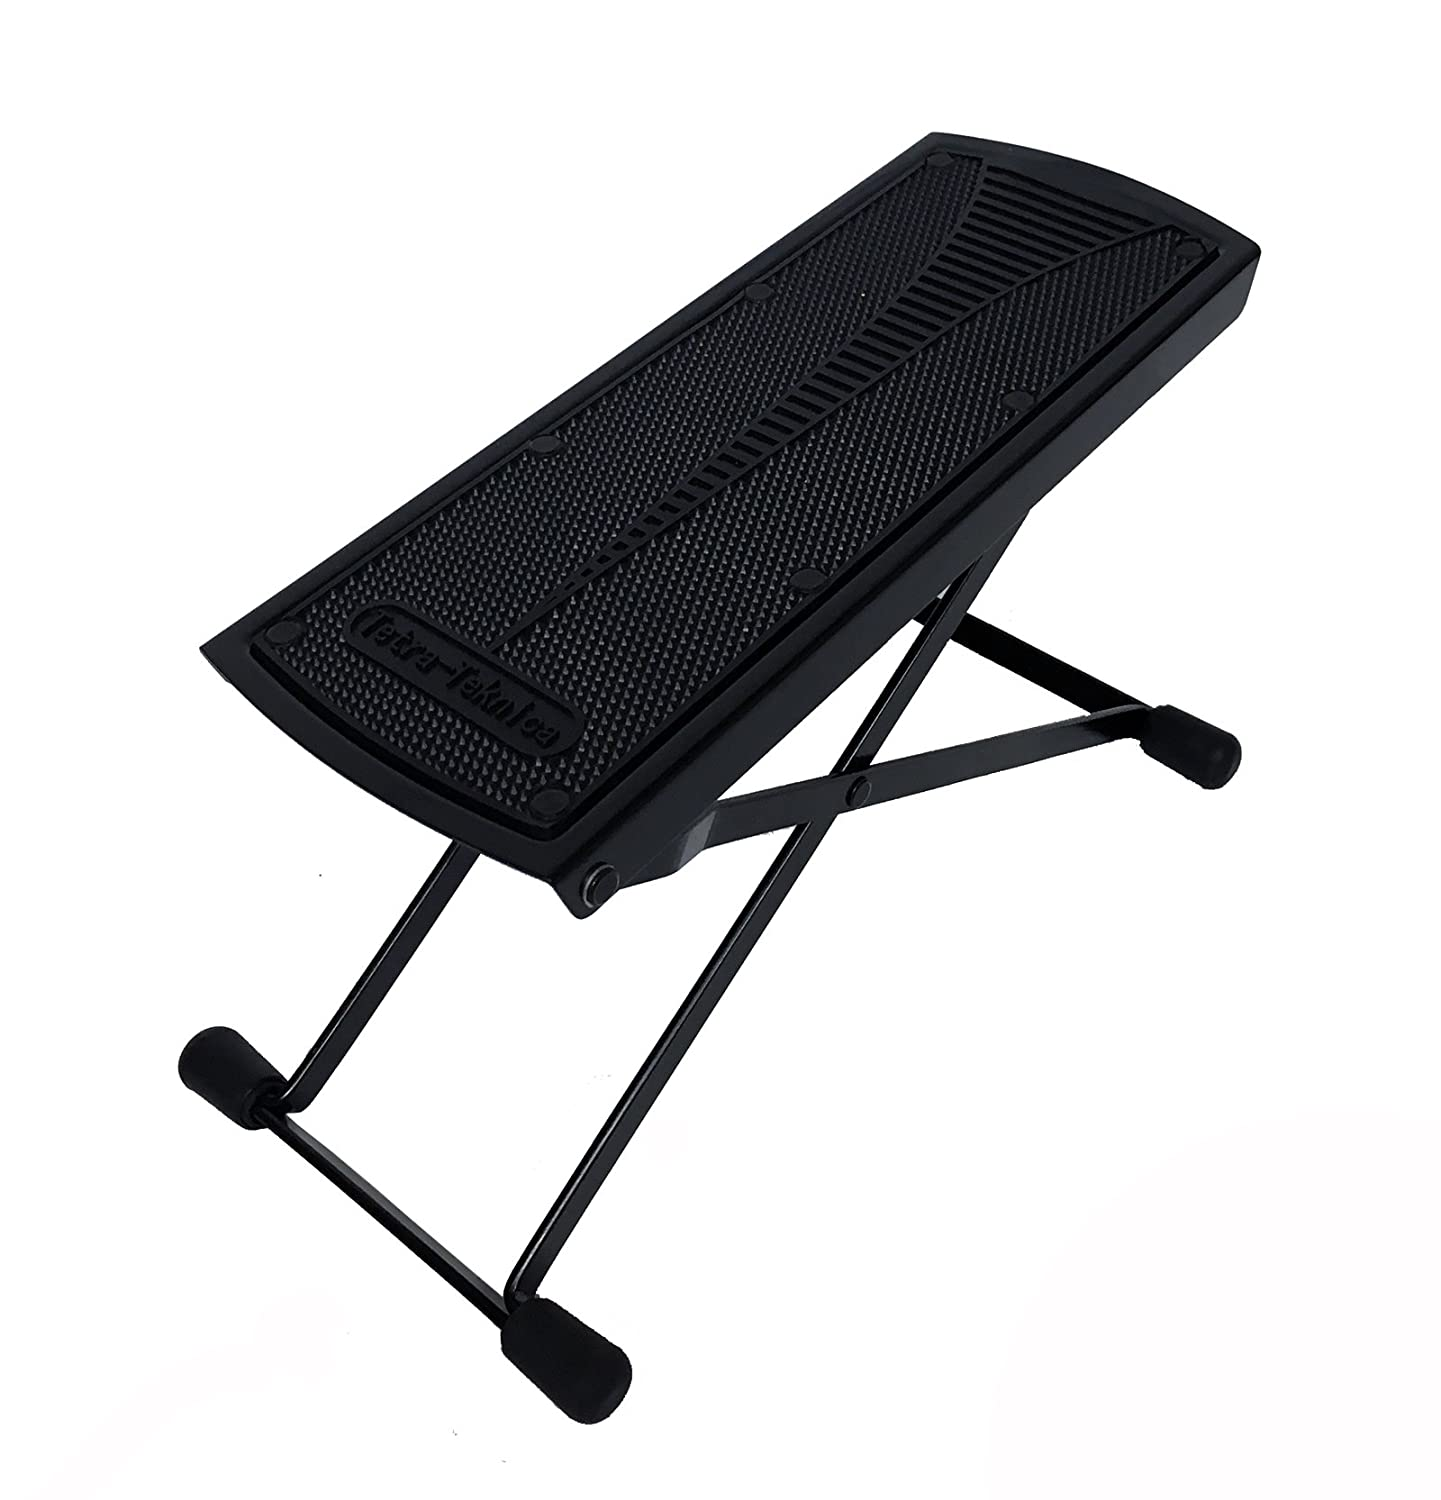 Tetra-Teknica Essentials Series GFR-01 6-Position Height Adjustable Guitar Foot Rest, Color Black SFT Inc.